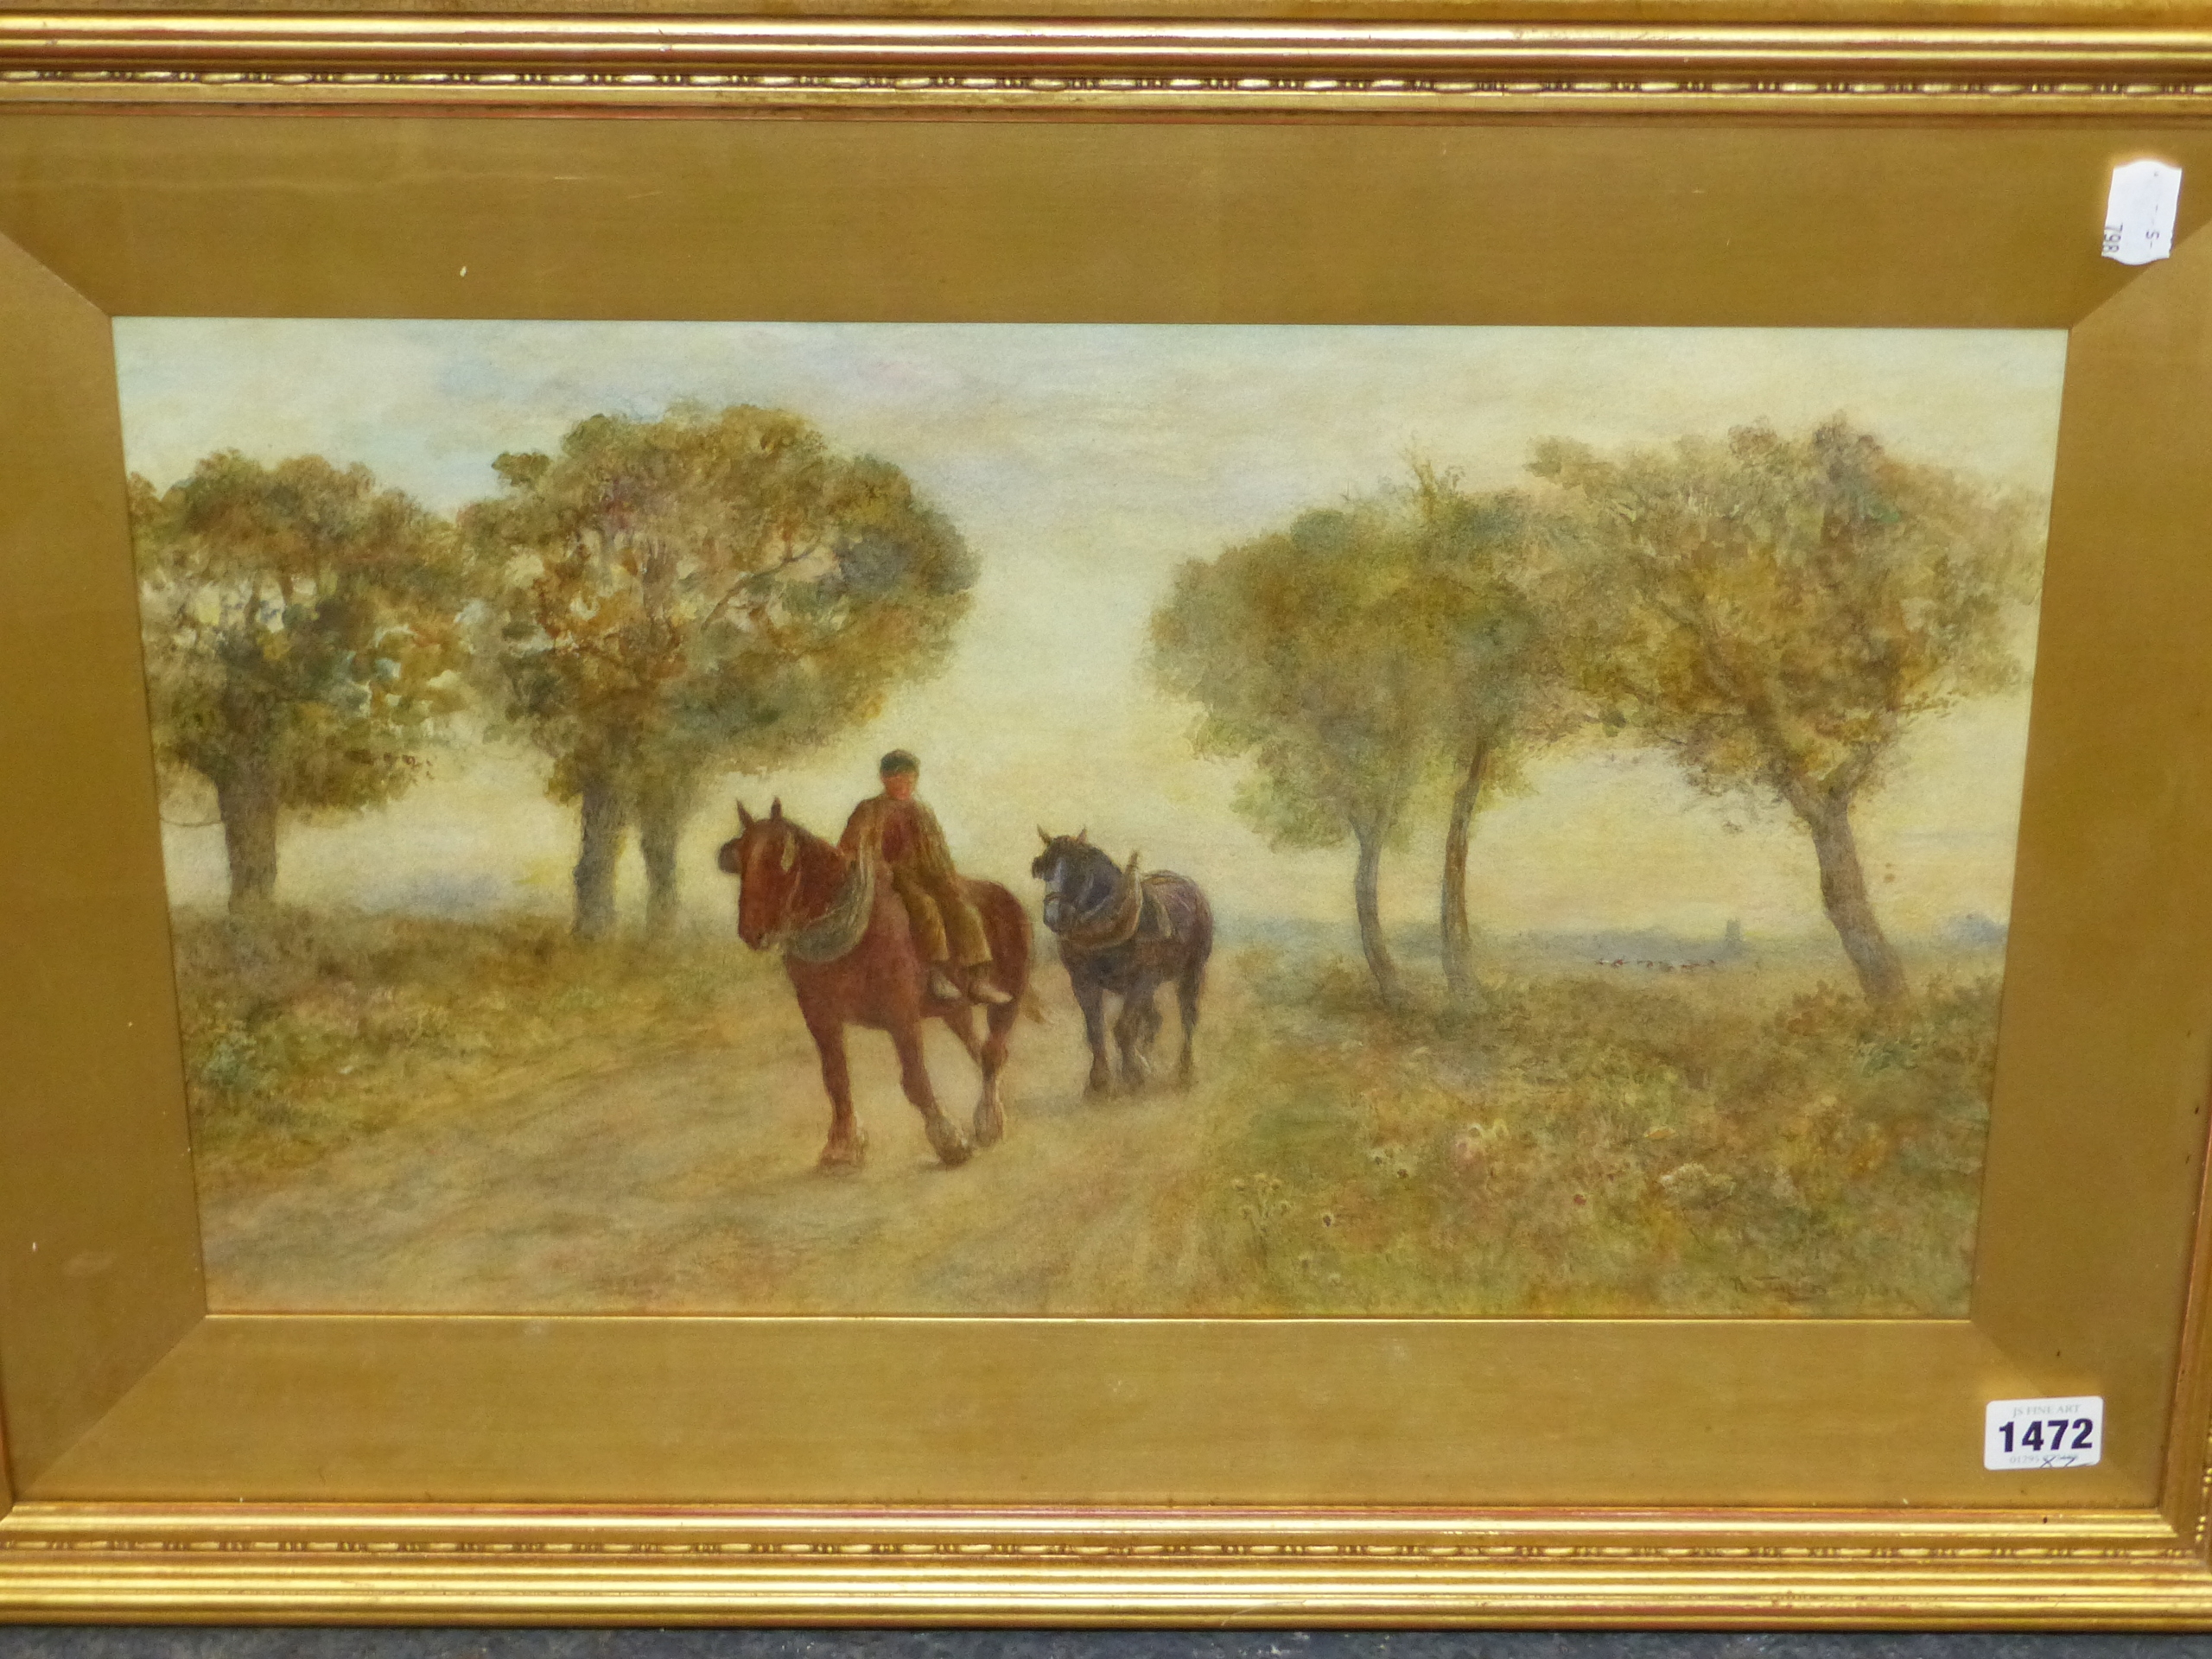 19th/20th C. ENGLISH SCHOOL HOMEWARD BOUND, SIGNED INDISTINCTLY WATERCOLOUR. 28 x 46 cms TOGETHER - Image 2 of 15